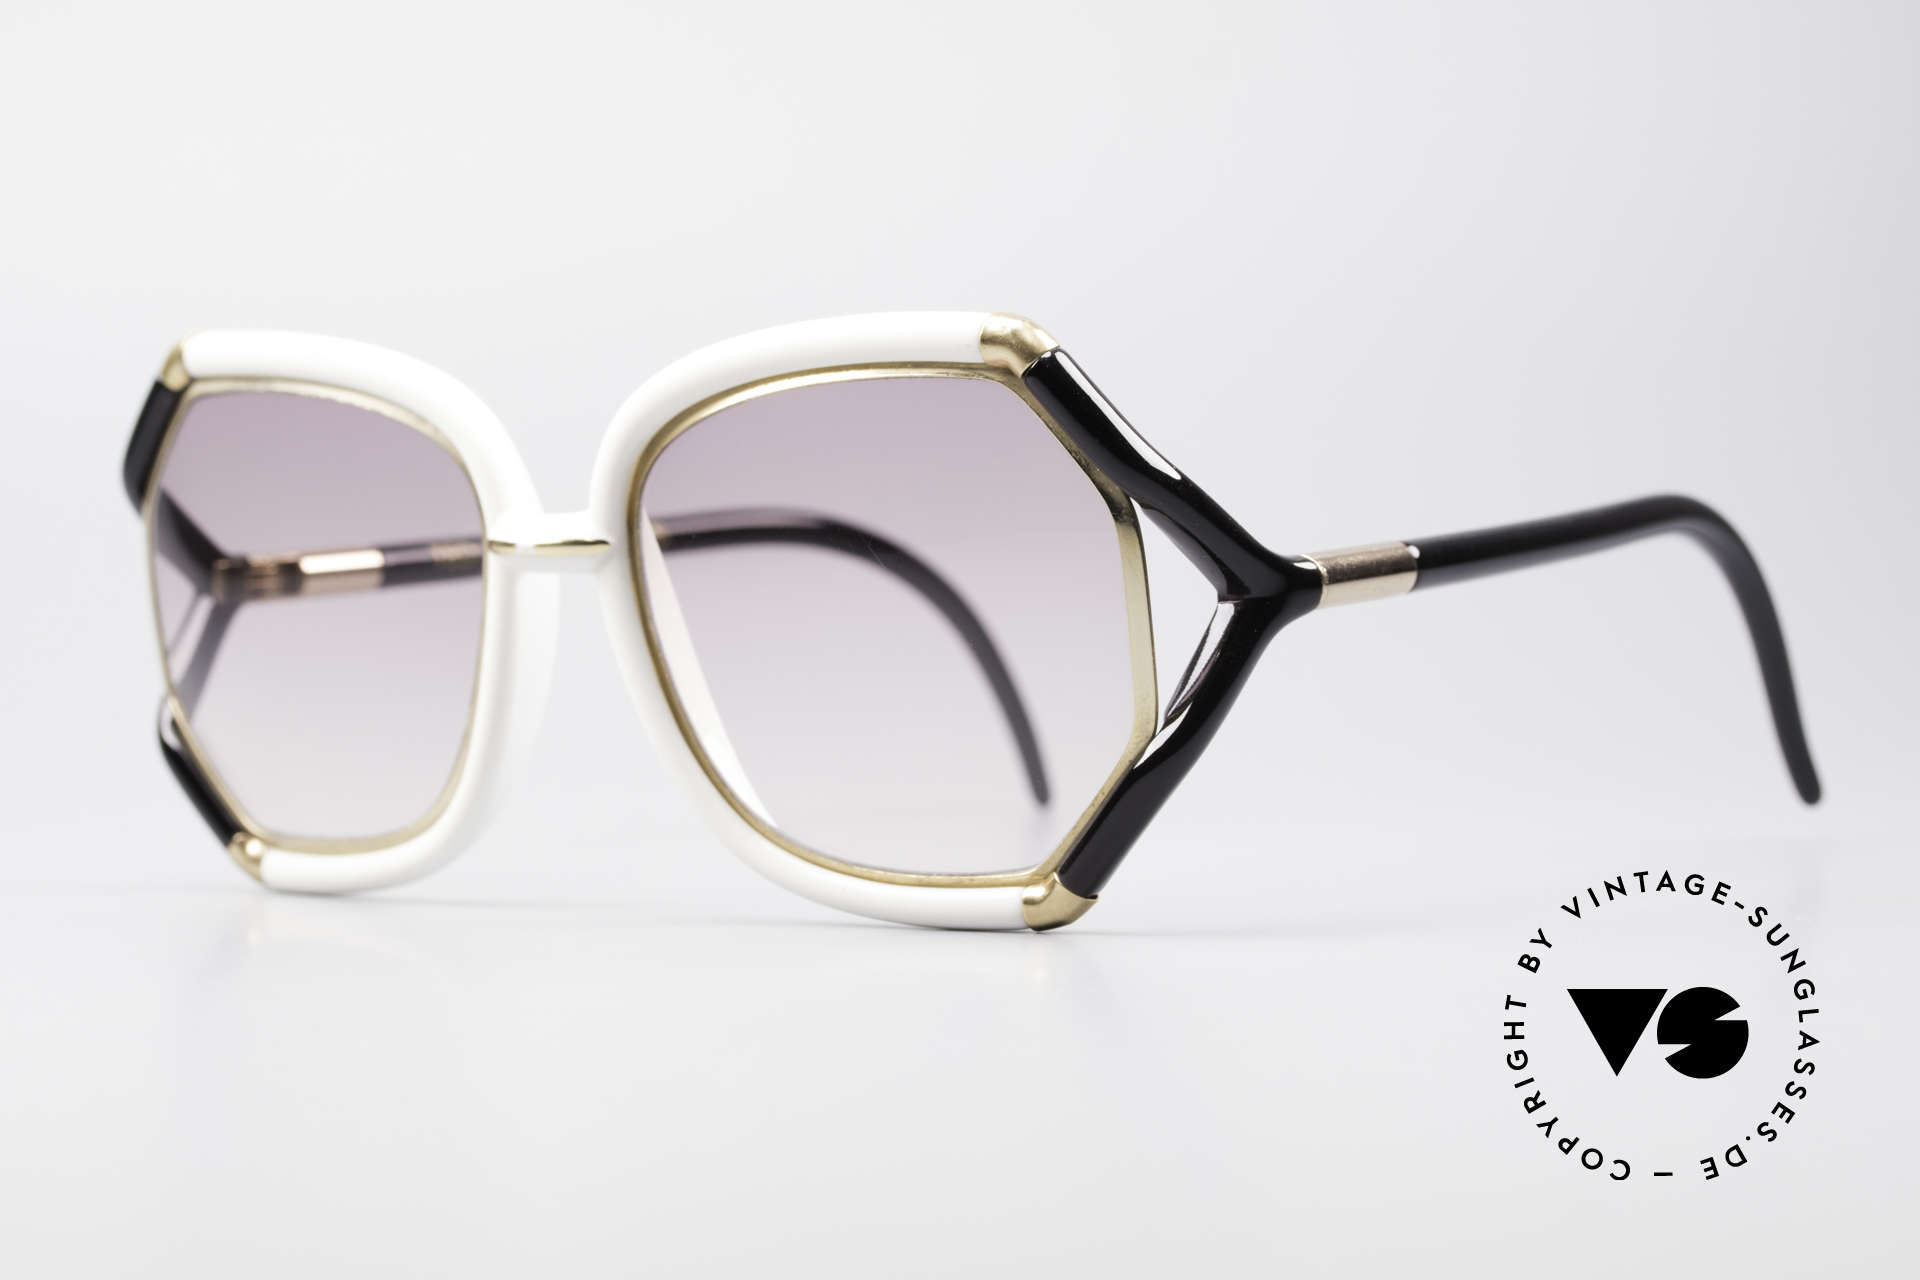 Ted Lapidus B02 70's Designer Sunglasses, worn by the movie stars of the 70s (St. Tropez style), Made for Women